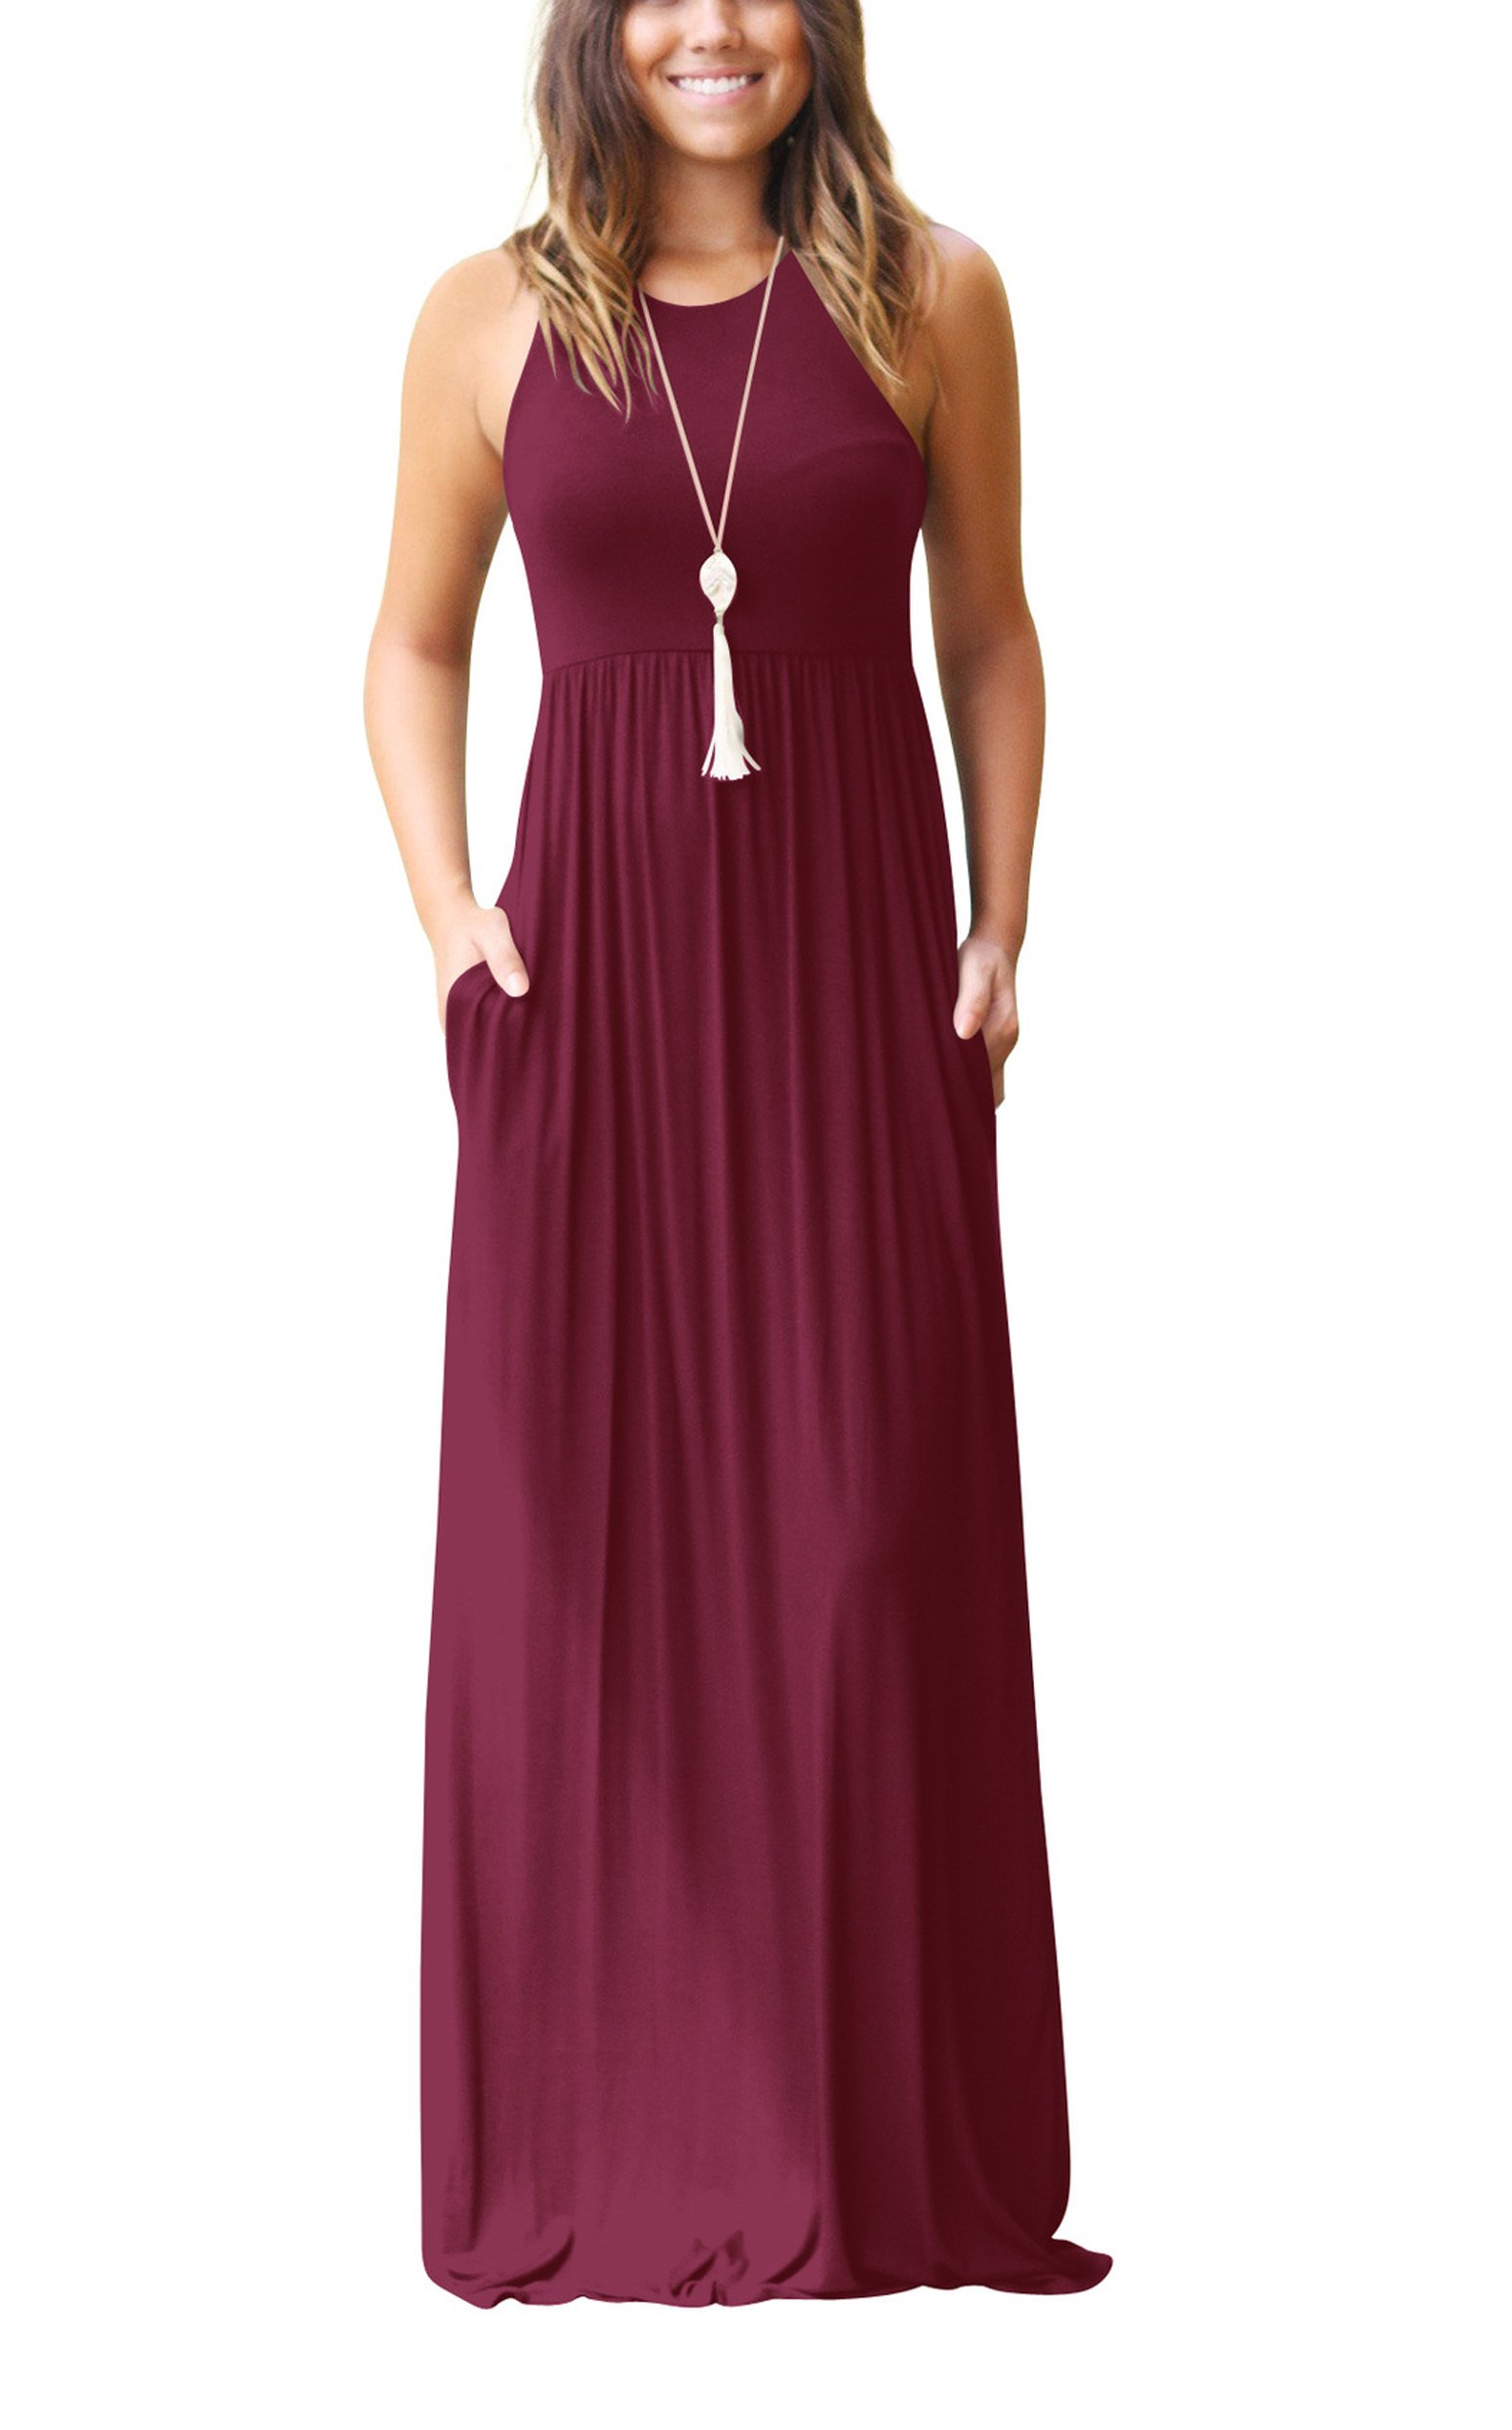 ZIKKER Women's Sleeveless Racerback Loose Plain Maxi Dresses Casual Long Dresses with Pockets Wine Red S